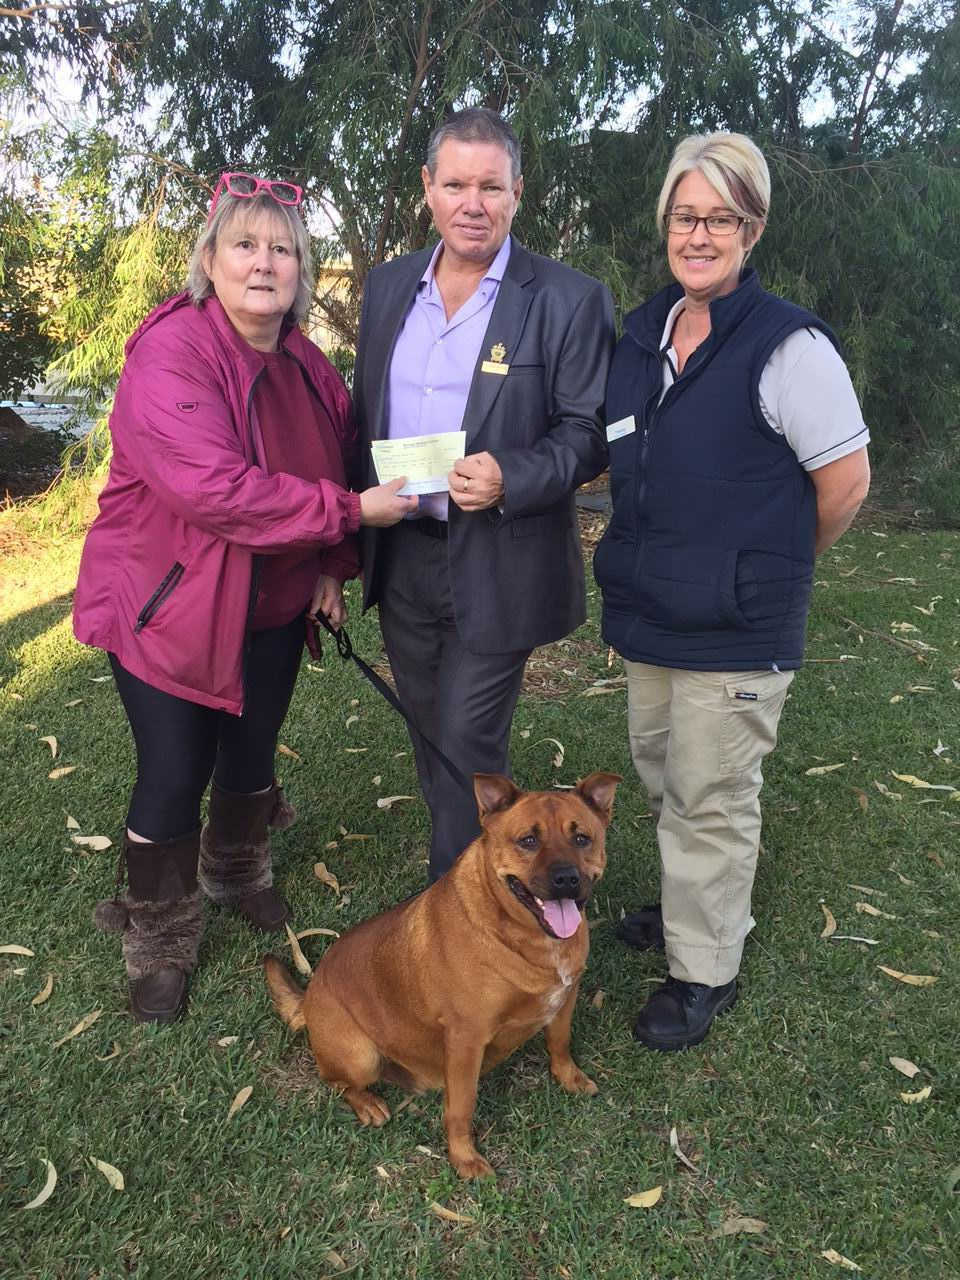 K9 president Carole Carter, deputy mayor Darren Lee and City of Mandurah pound assistant Tracey Robert with dog Sally, who is looking for a home.